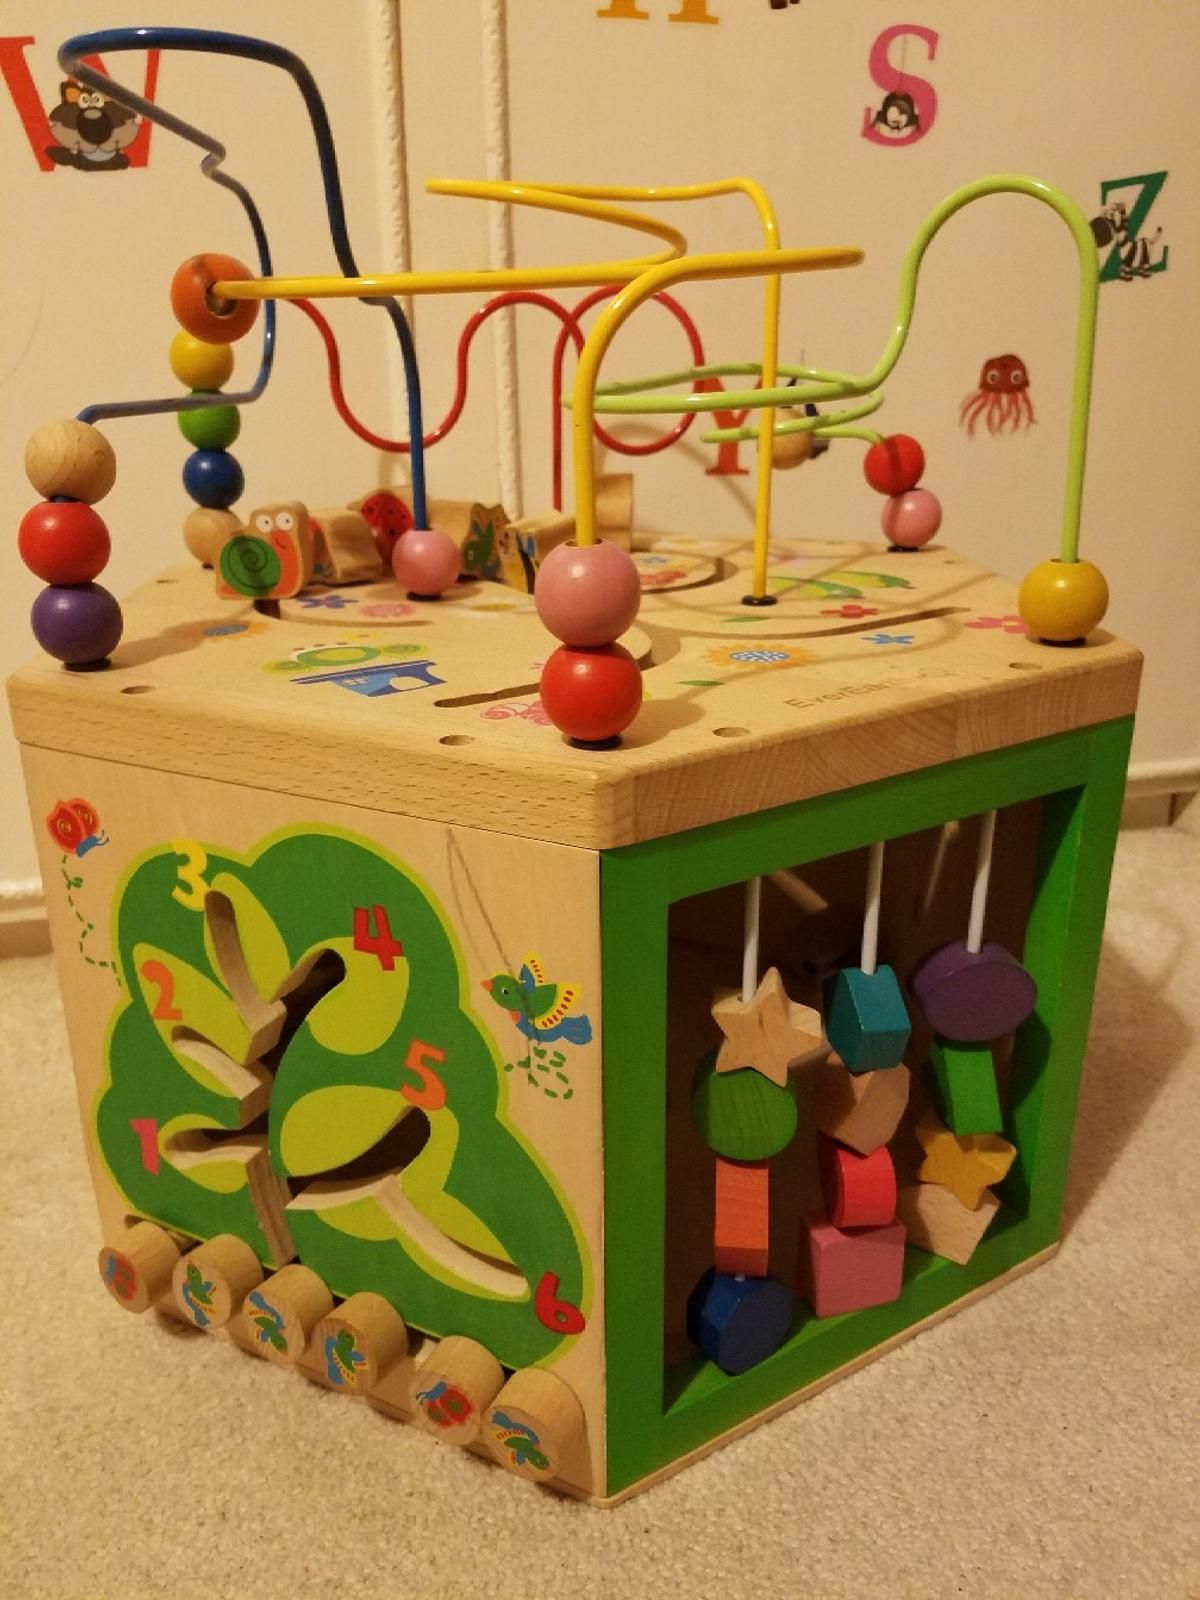 Used Everearth 7 In 1 Garden Activity Cube In Cr0 London For 2000